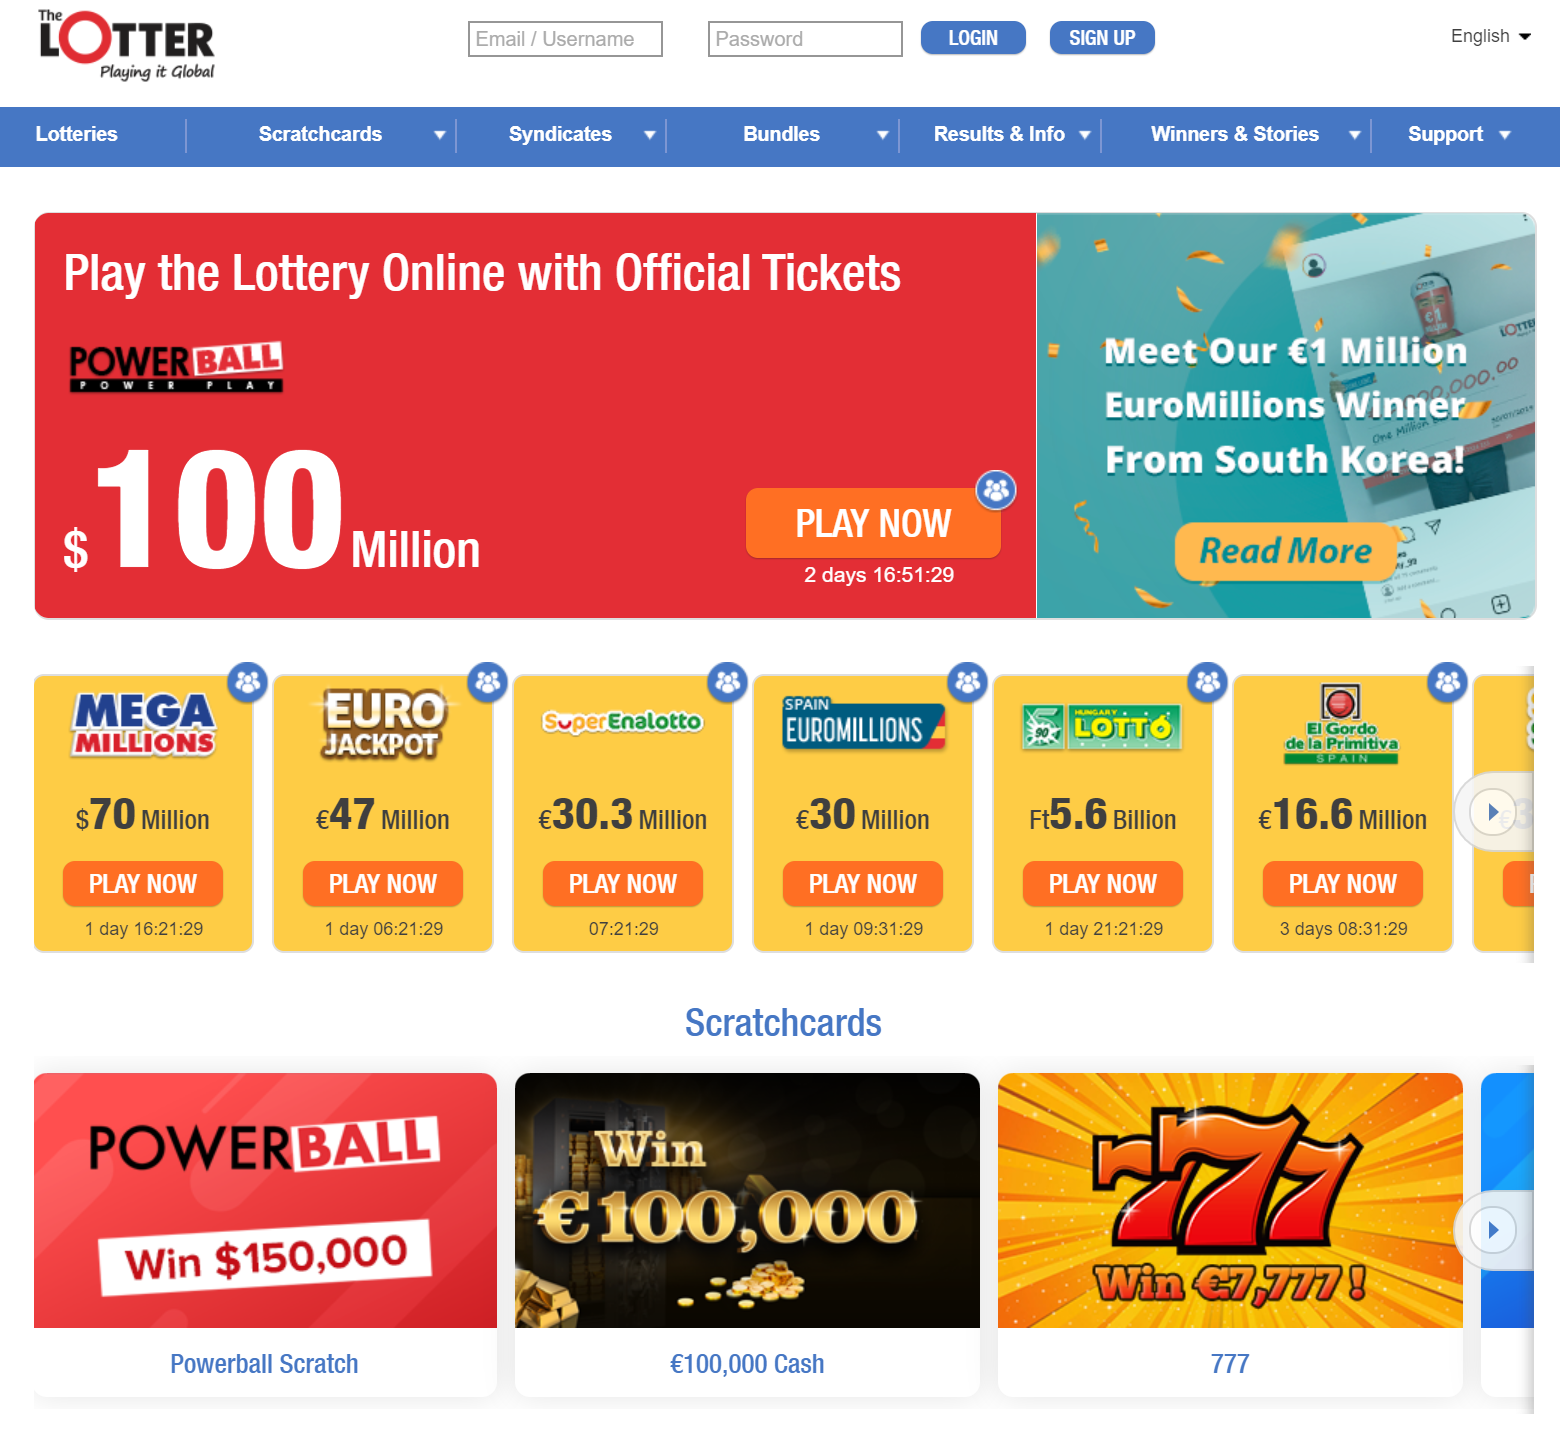 thelotter welcome casino offer